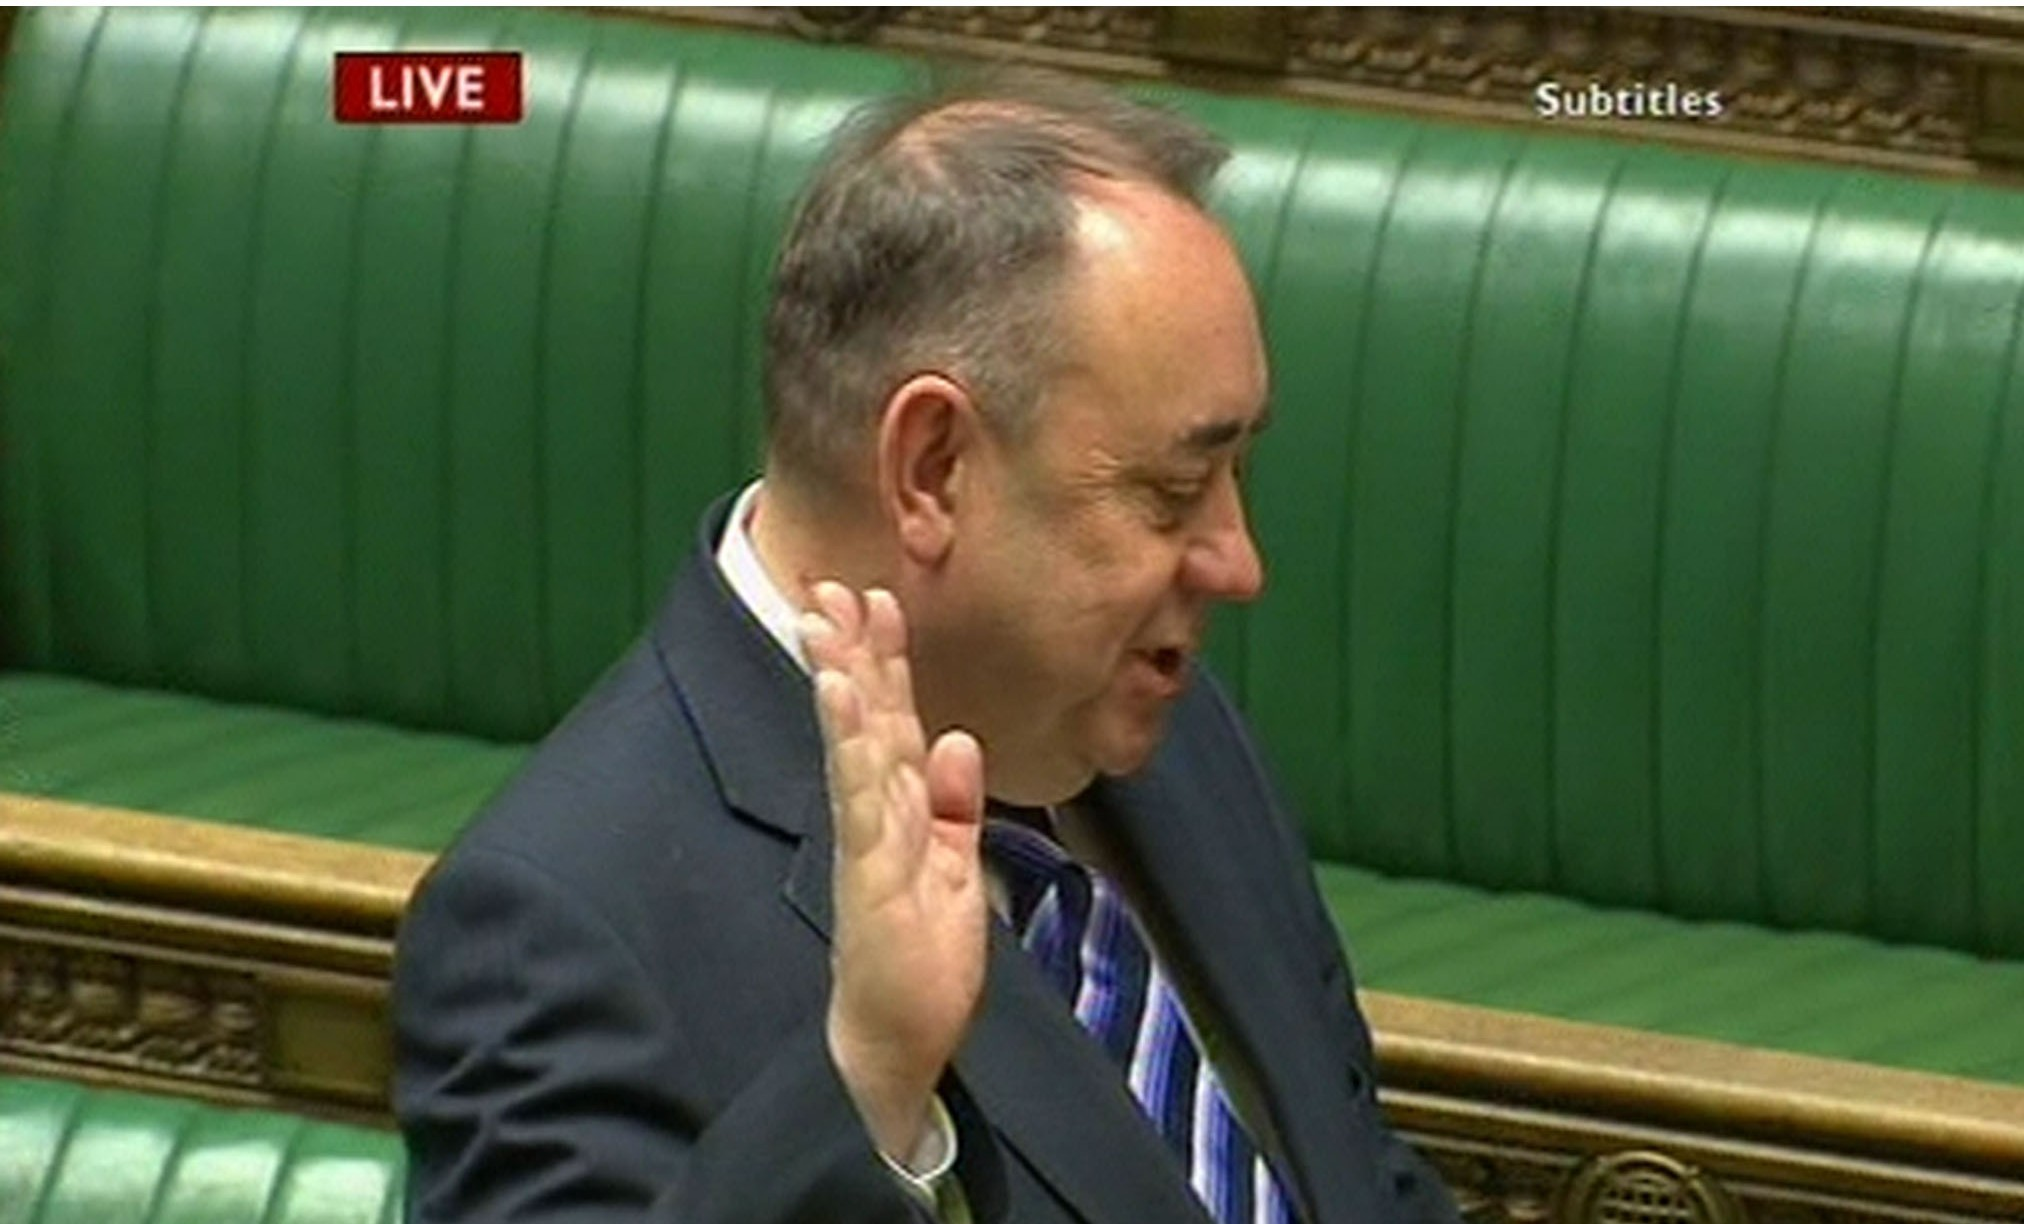 Alex Salmond is sworn in as a MP as he takes his Commons seat.